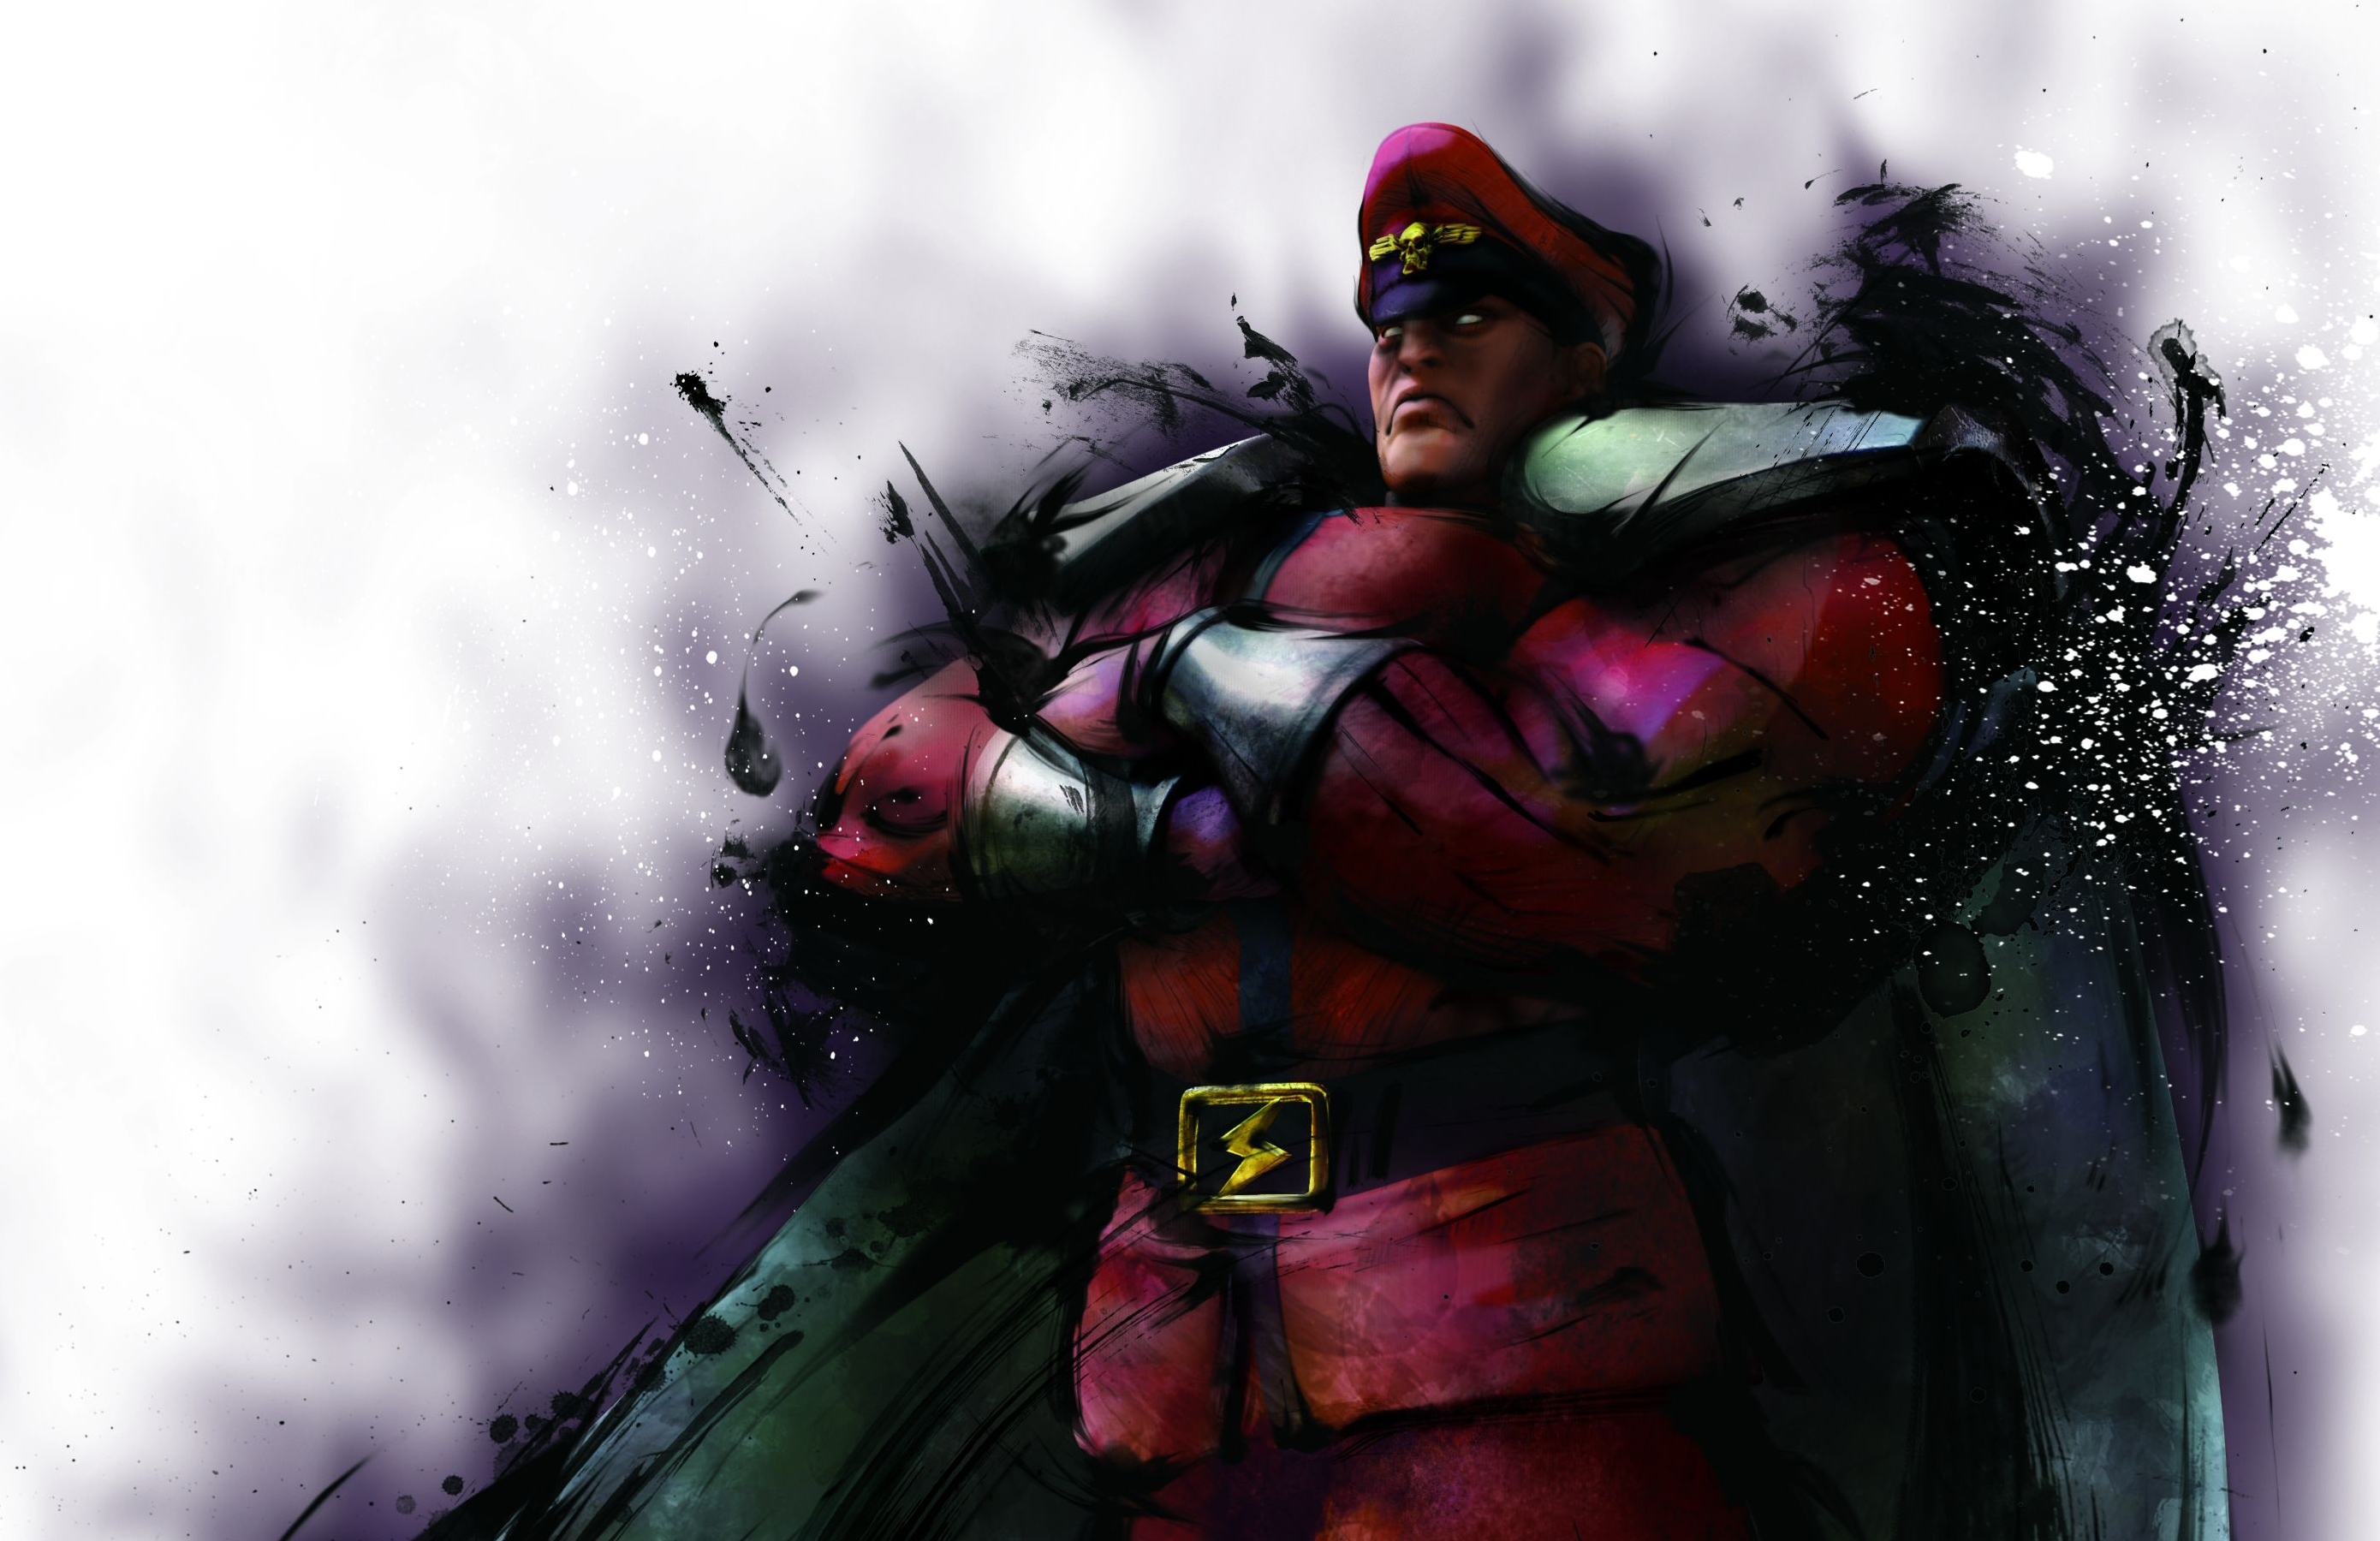 Street Fighter Backgrounds, Pictures, Images